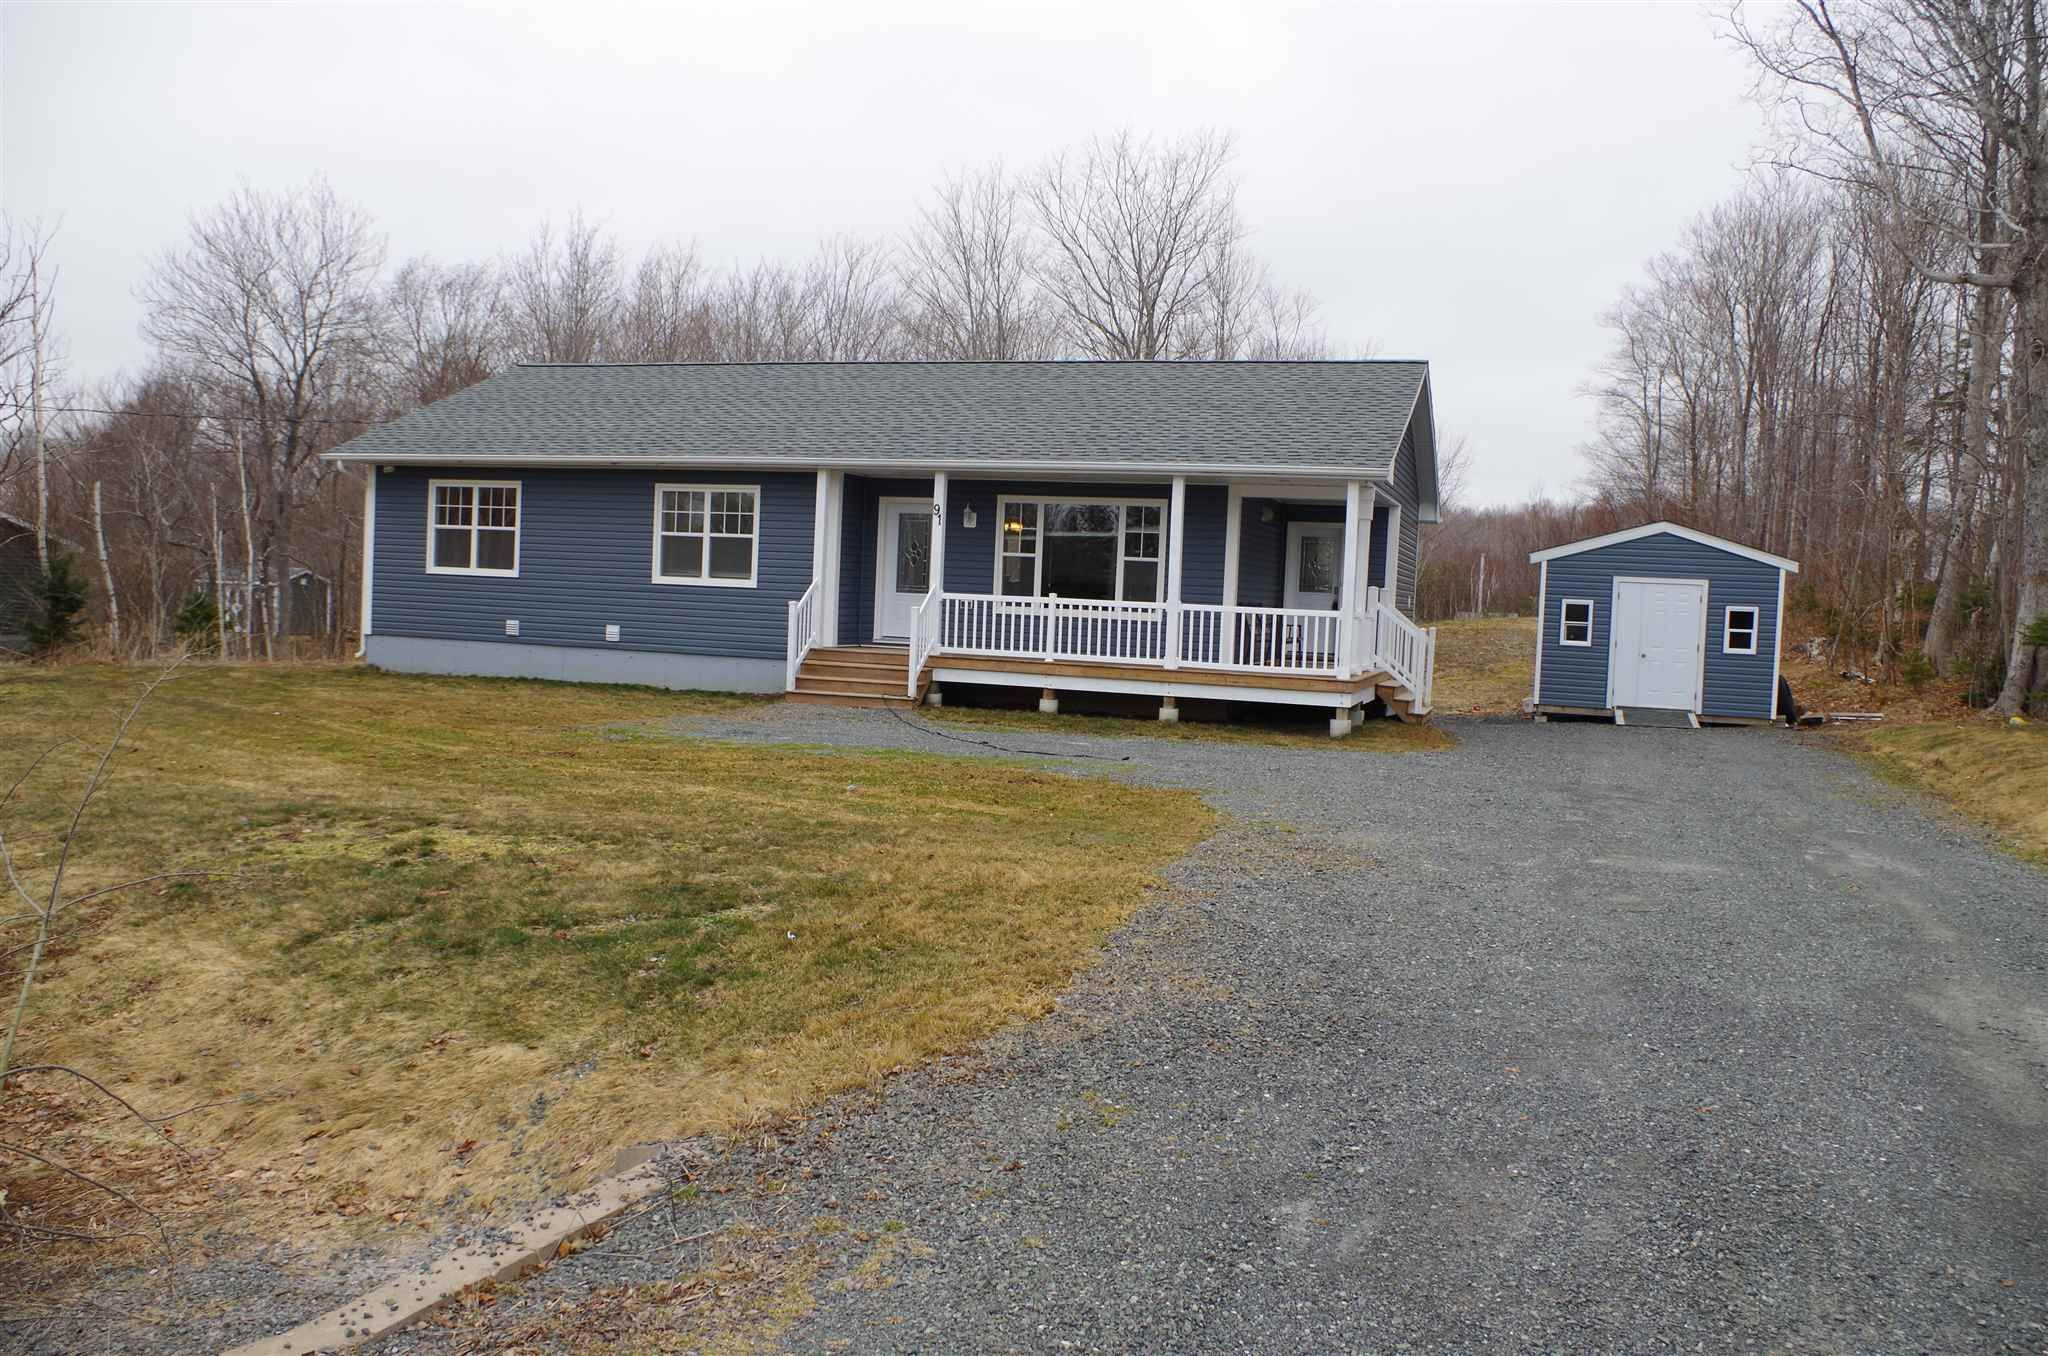 Main Photo: 91 Brandy Drive in Howie Centre: 202-Sydney River / Coxheath Residential for sale (Cape Breton)  : MLS®# 202107026